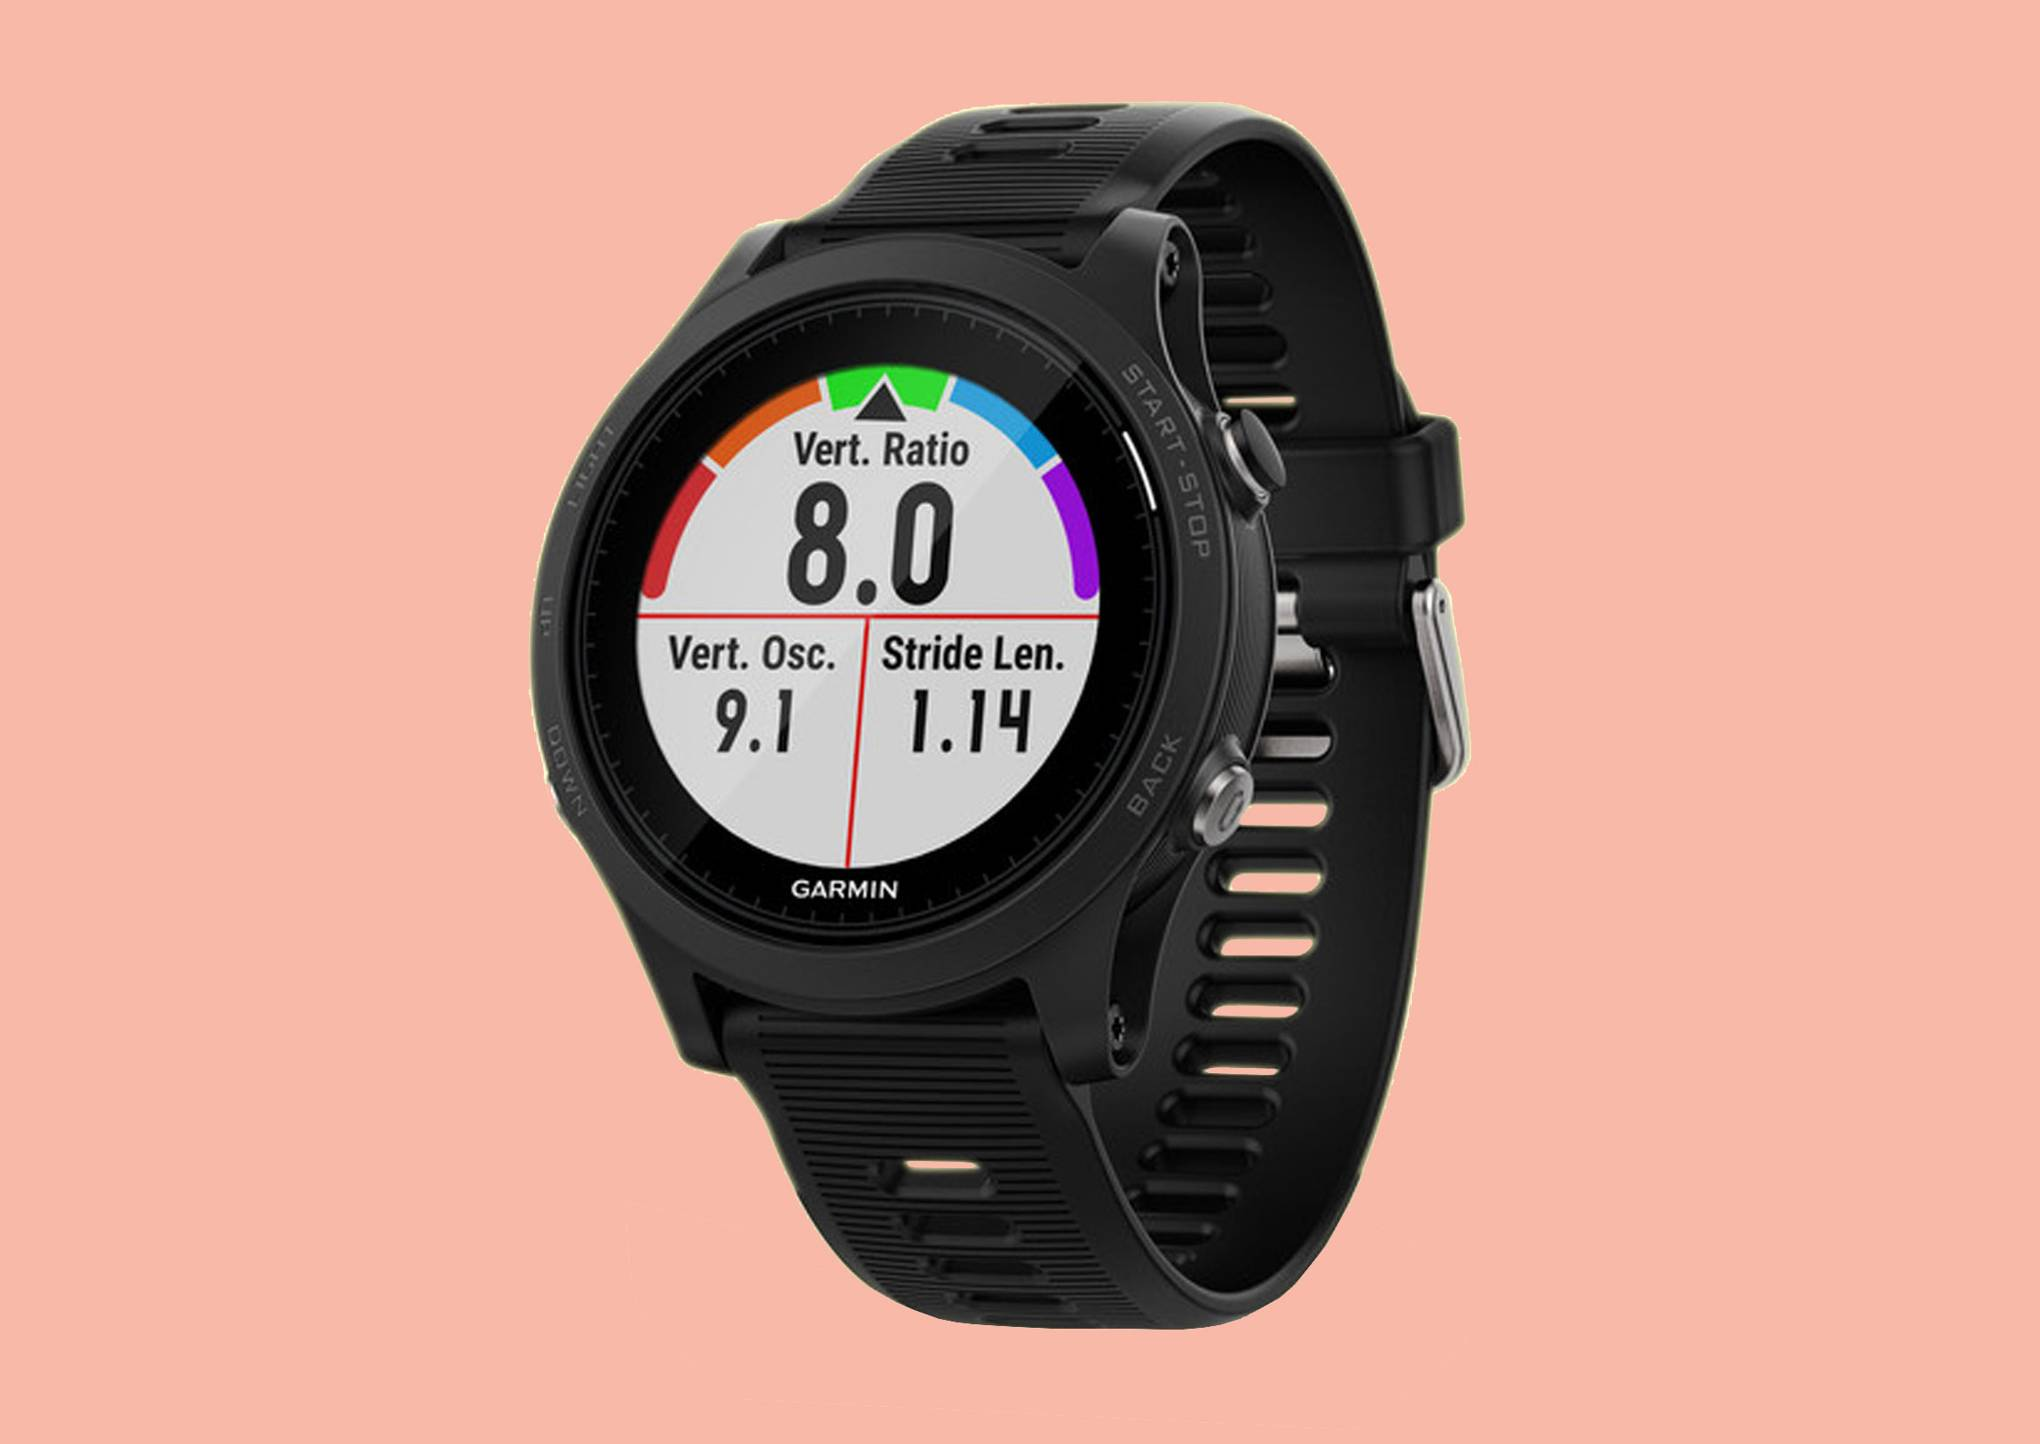 The Best Fitness Trackers For Running Swimming And Gym In 2018 Ways To Run Power Outdoors Page 1 Of 2 Wired Uk